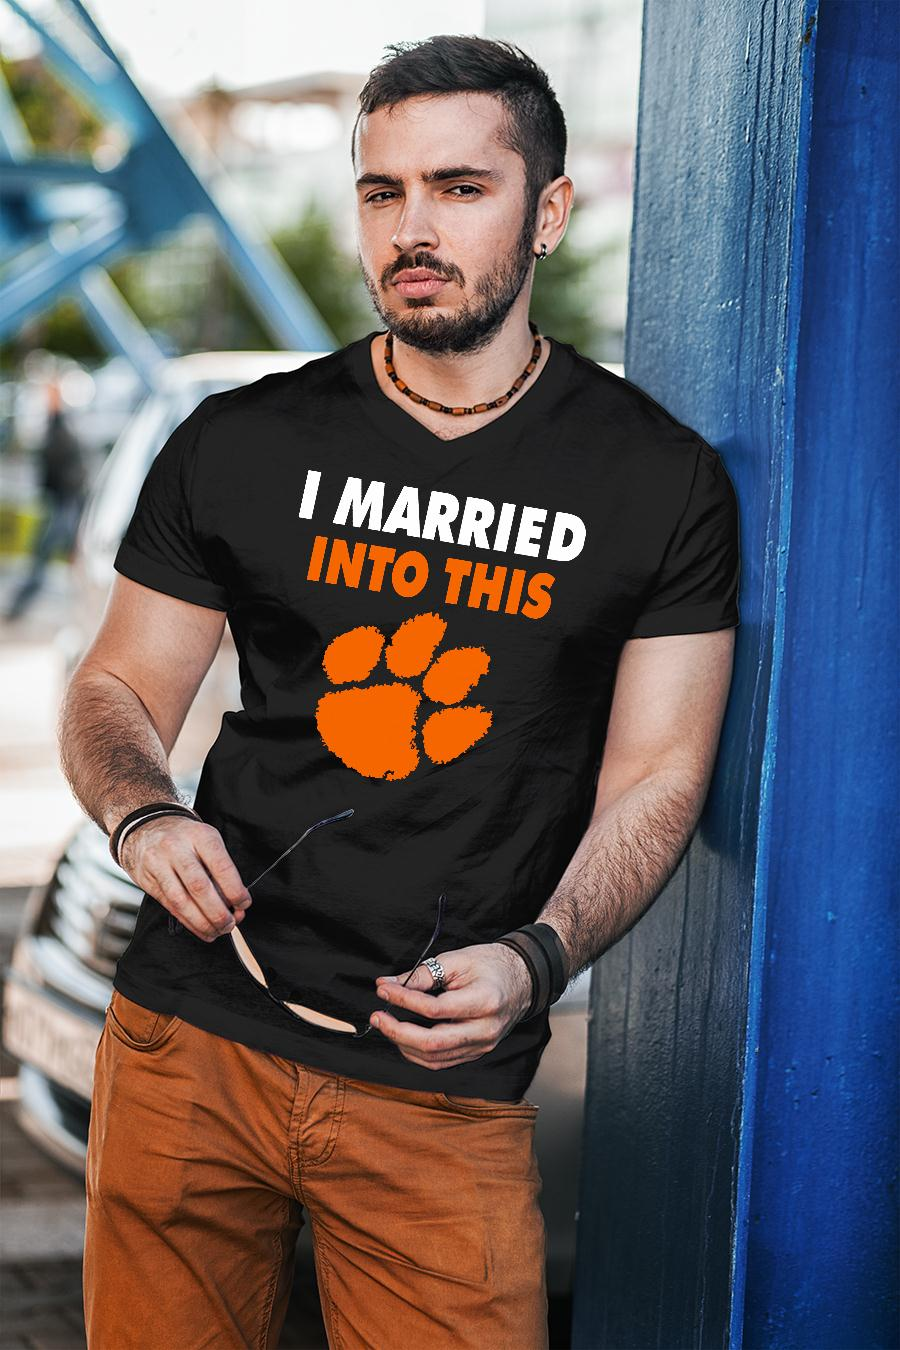 Clemson Tigers I Married Into This paw shirt unisex